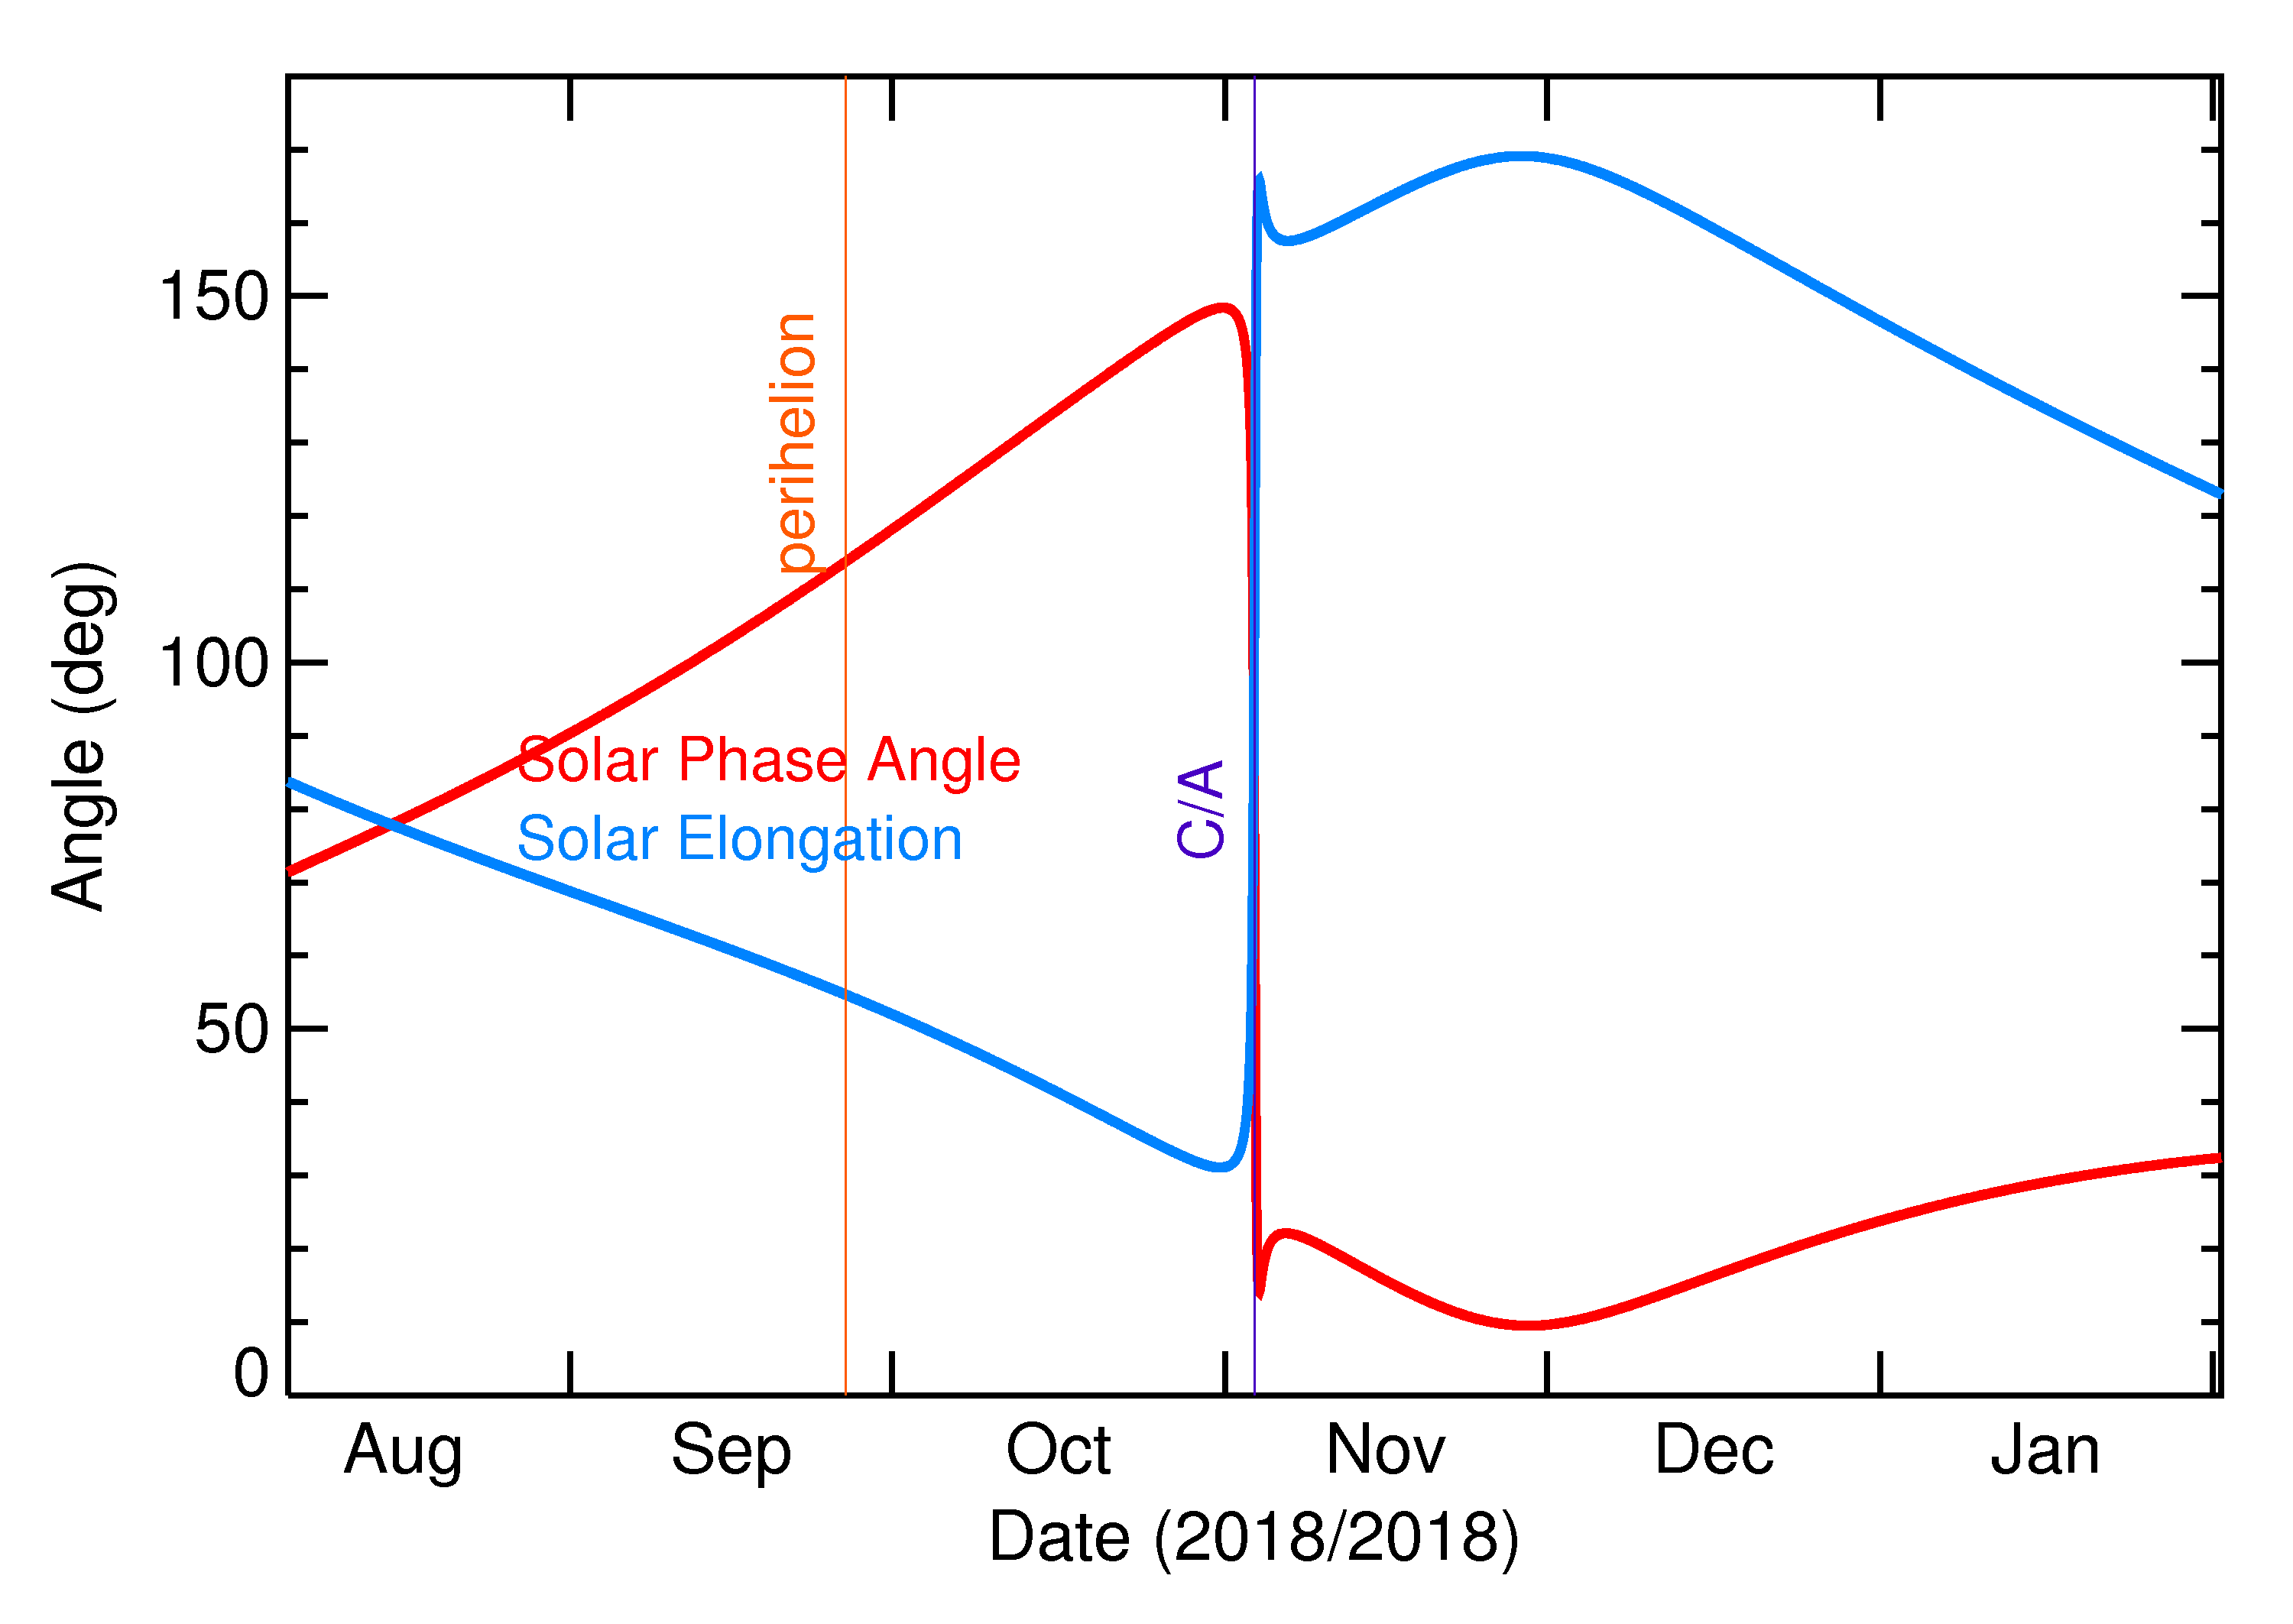 Solar Elongation and Solar Phase Angle of 2018 VP1 in the months around closest approach